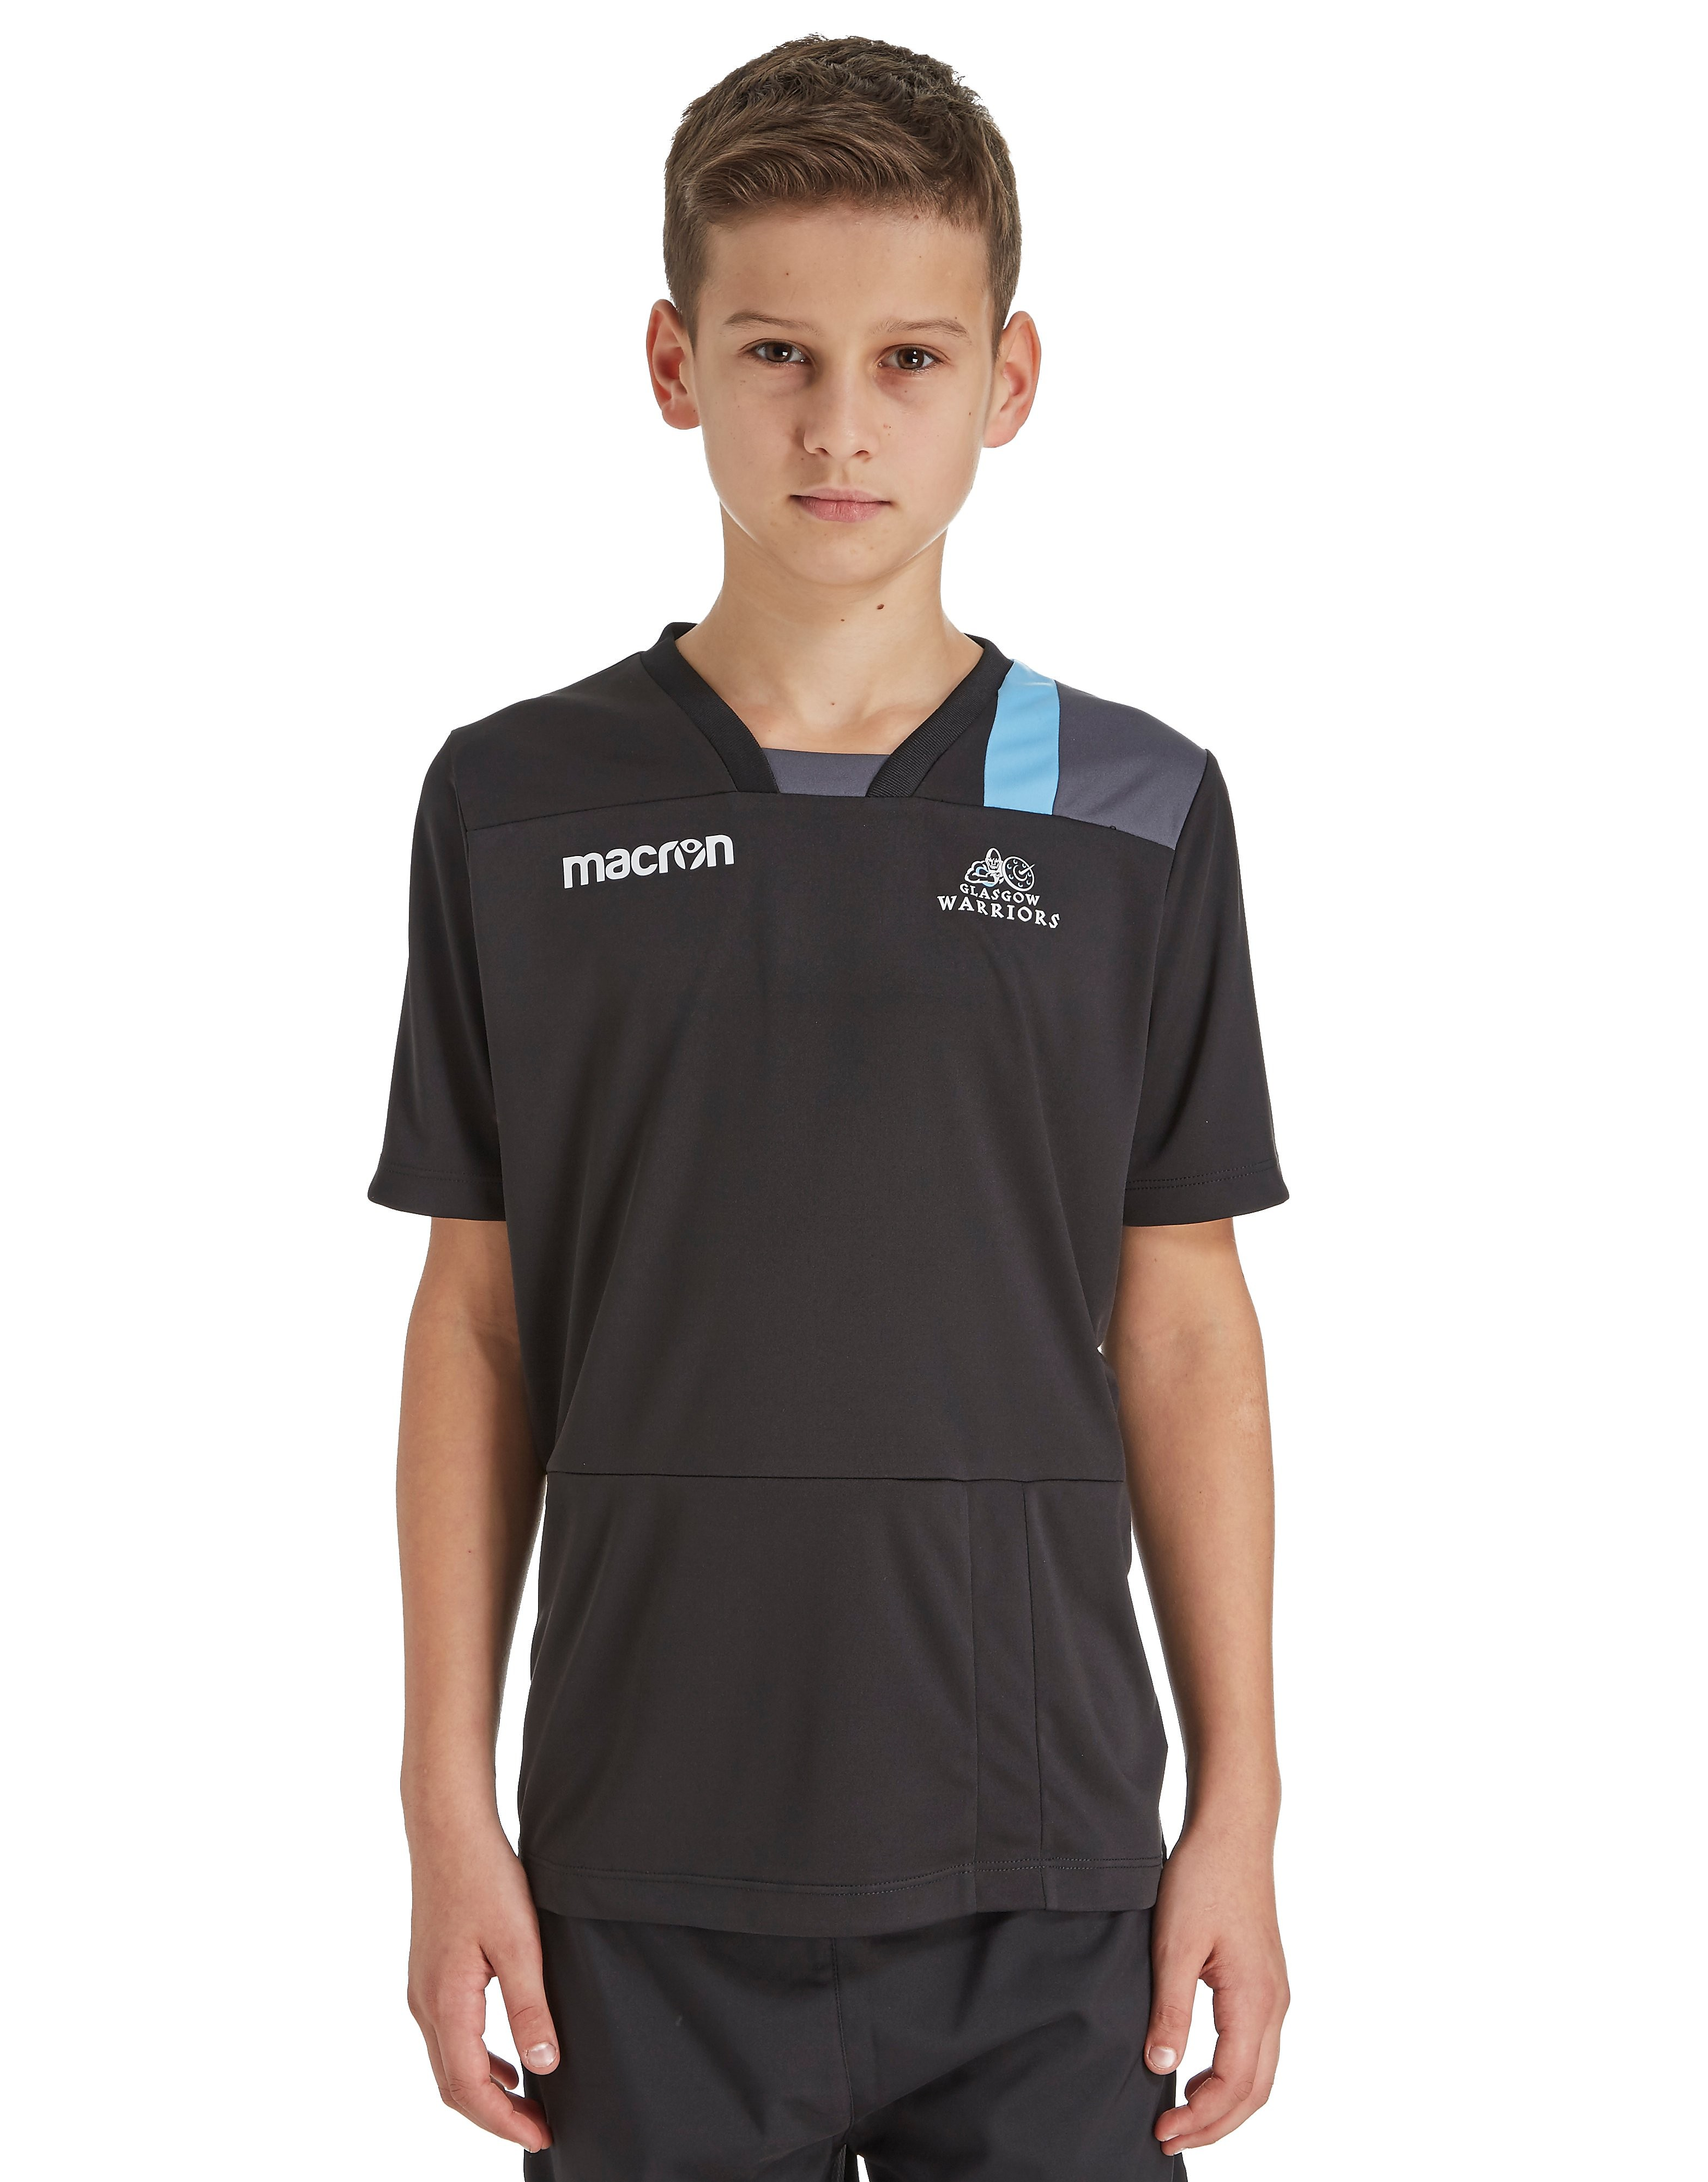 Macron Glasgow Warriors T-Shirt Junior - Black, Black